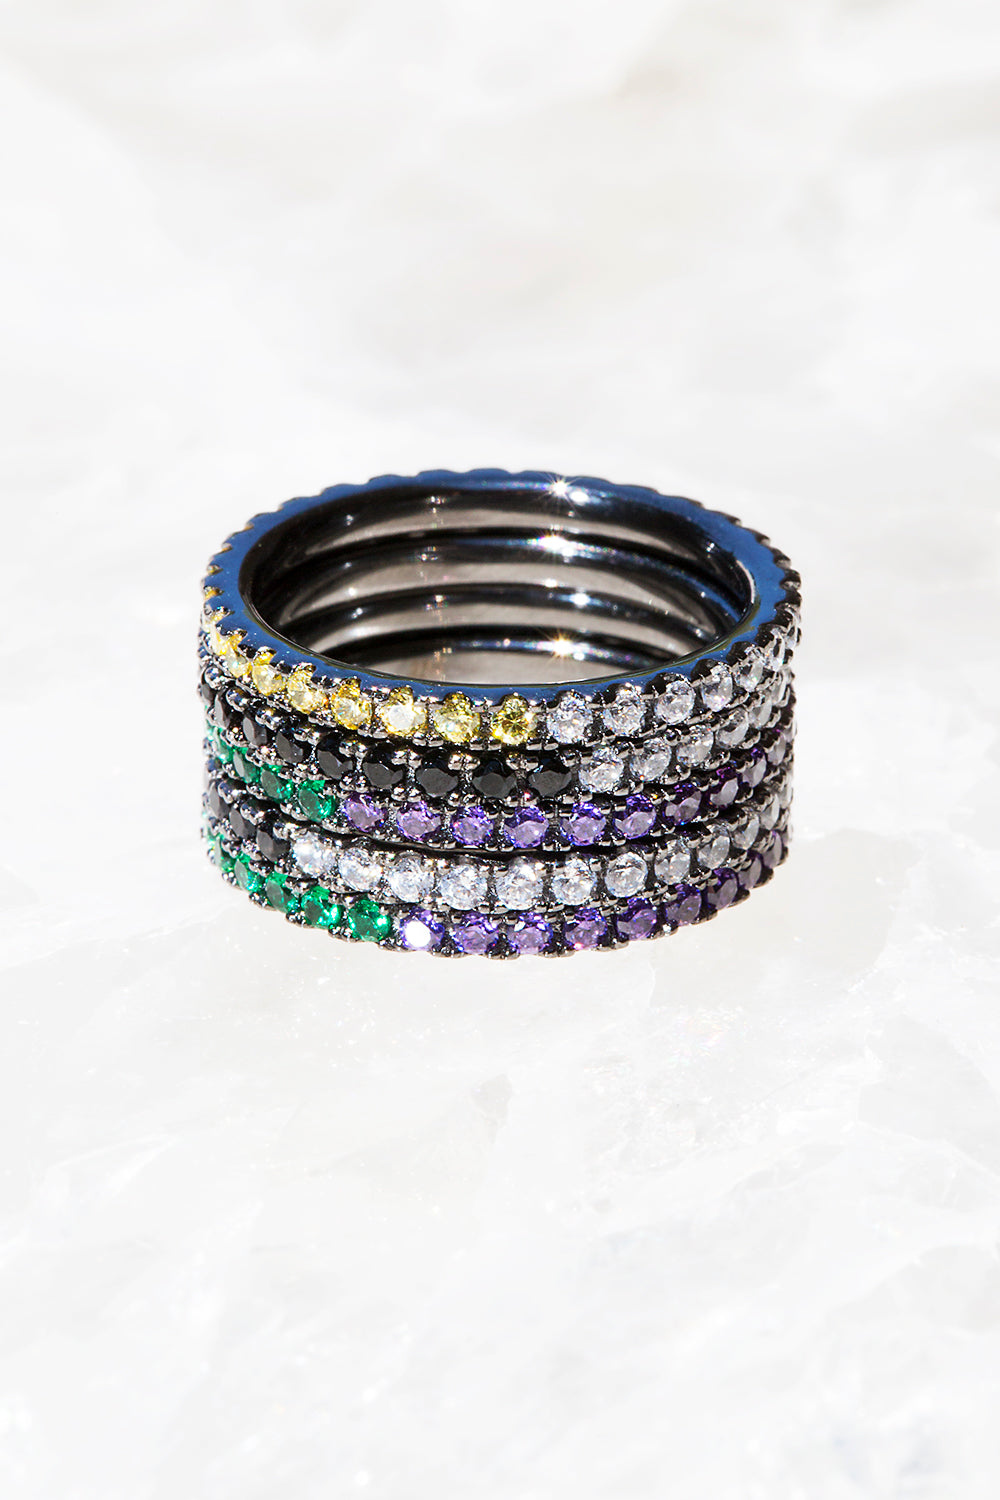 ETERNITY band in Voodoo